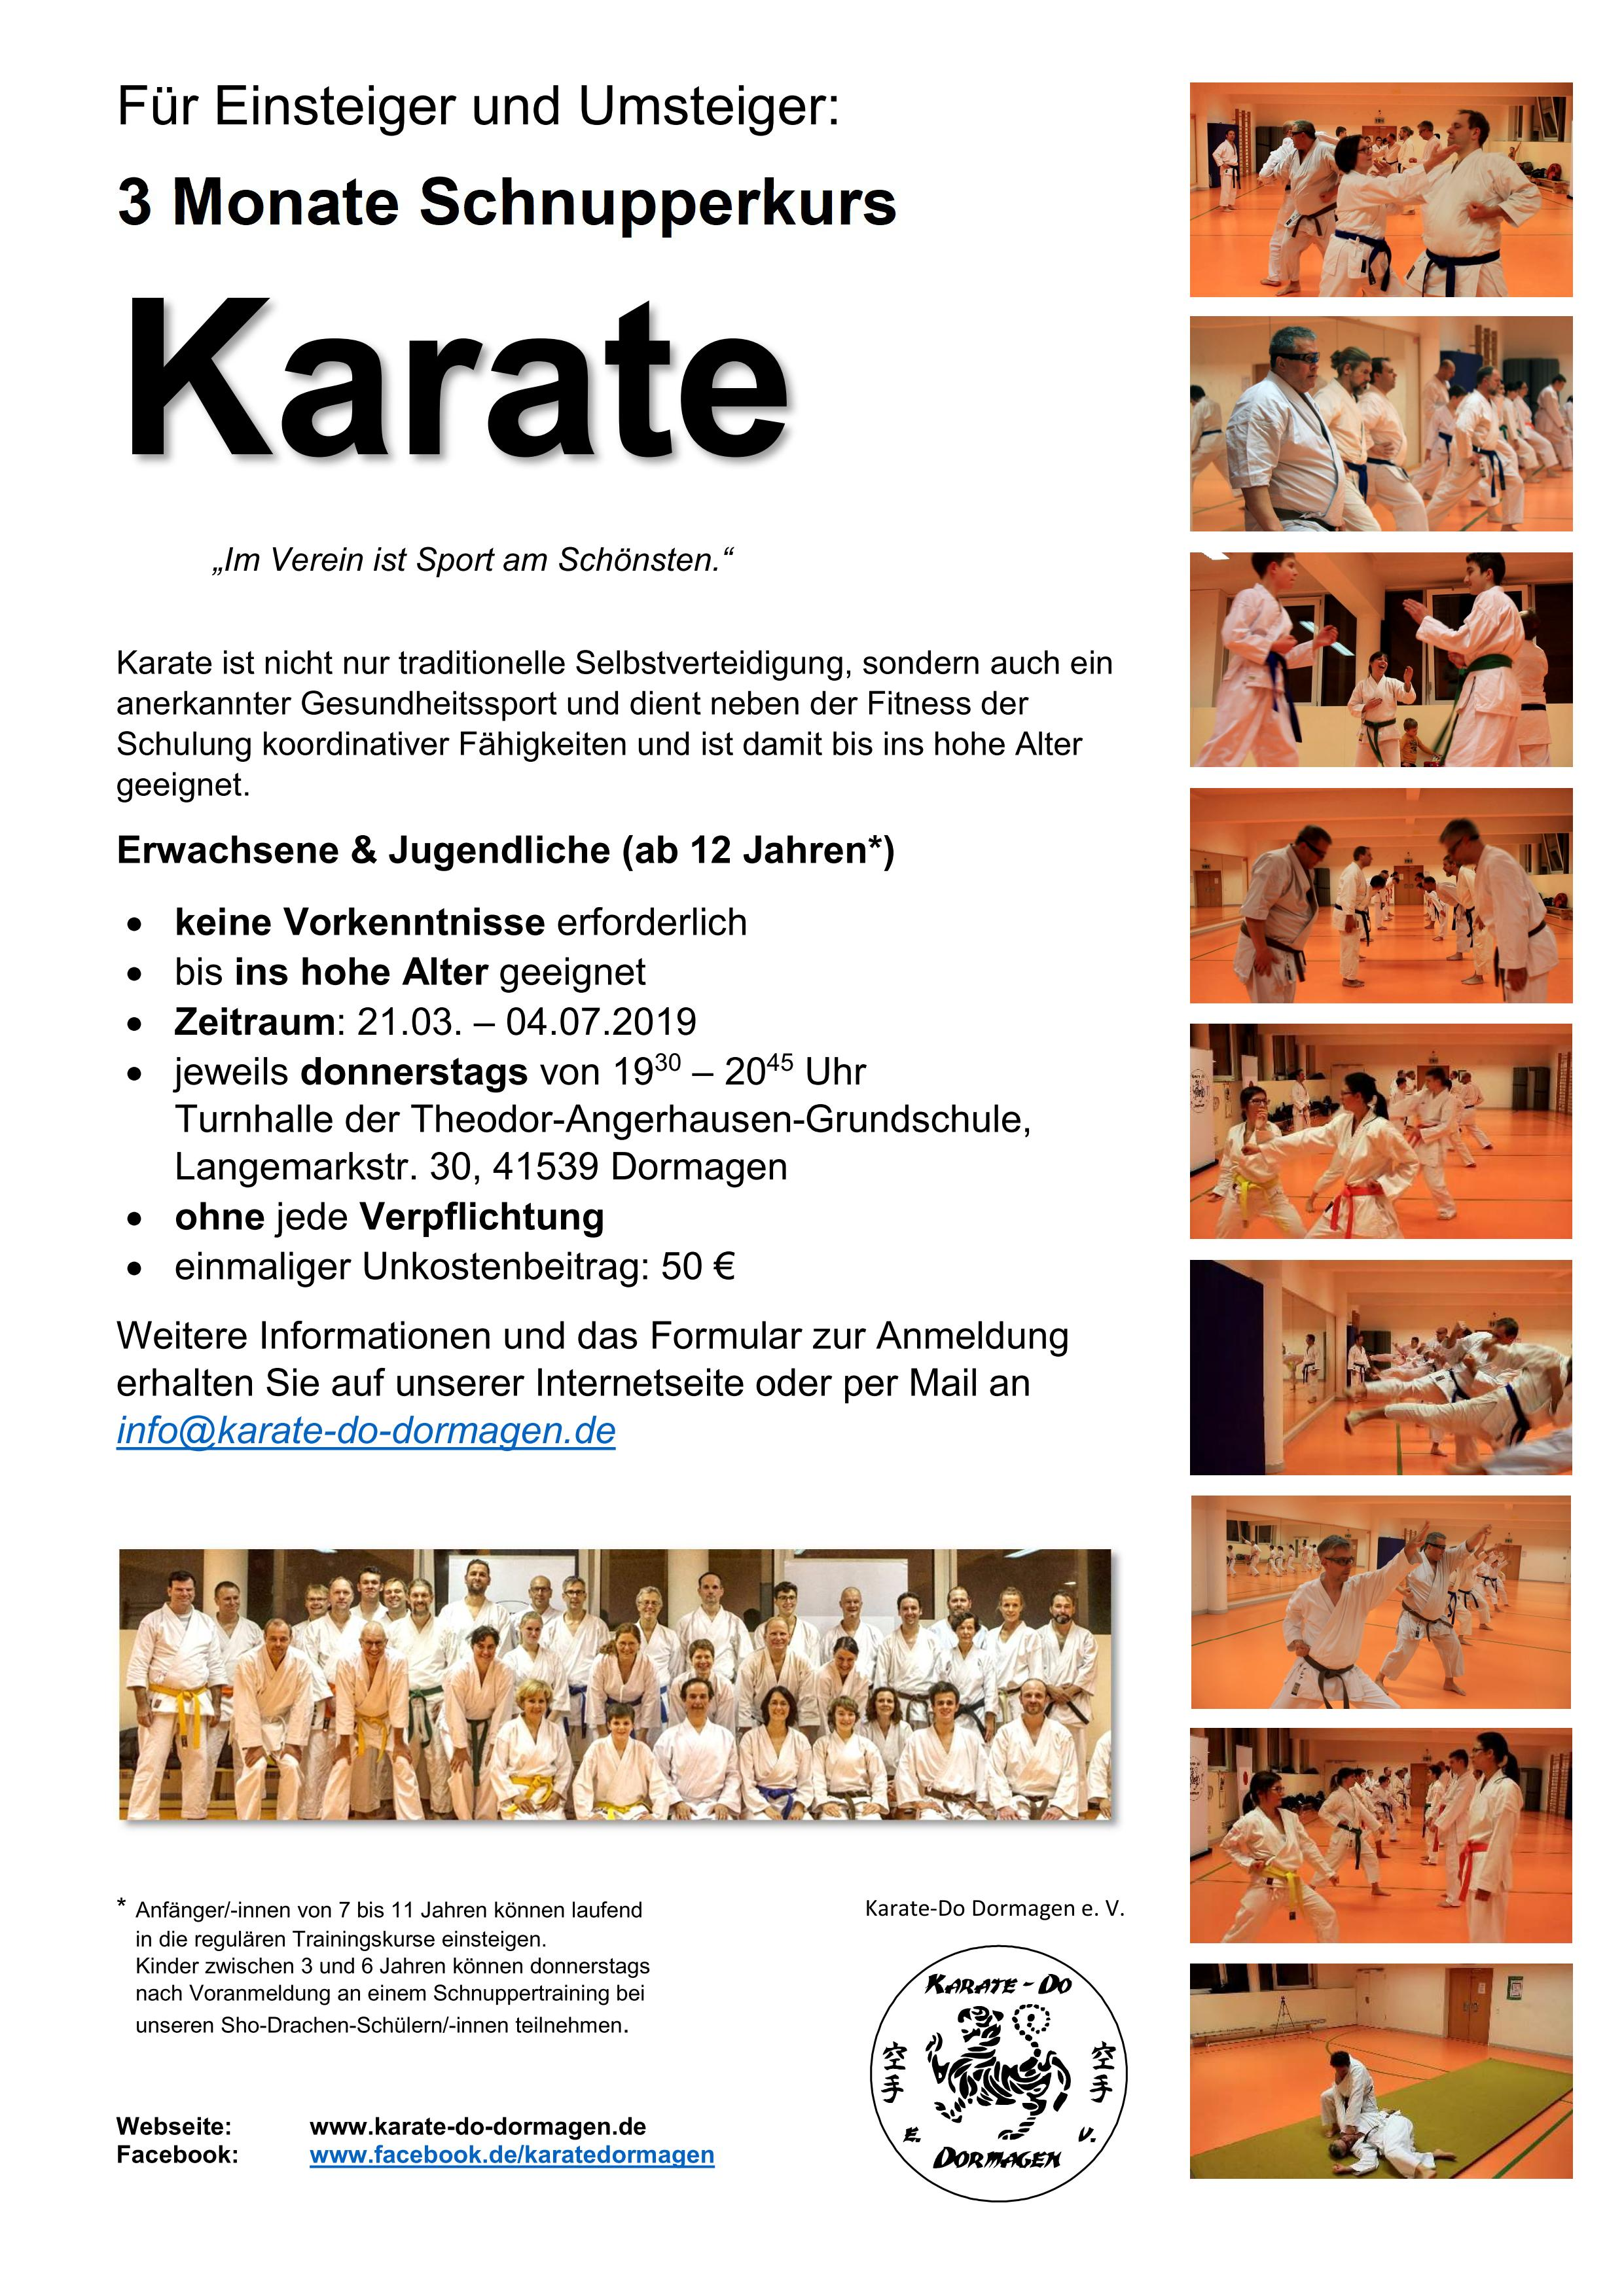 files/Karate-Do-Dormagen/Dateien/20190321-Flyer Einsteigerkurs Fruehjahr-2019.jpg